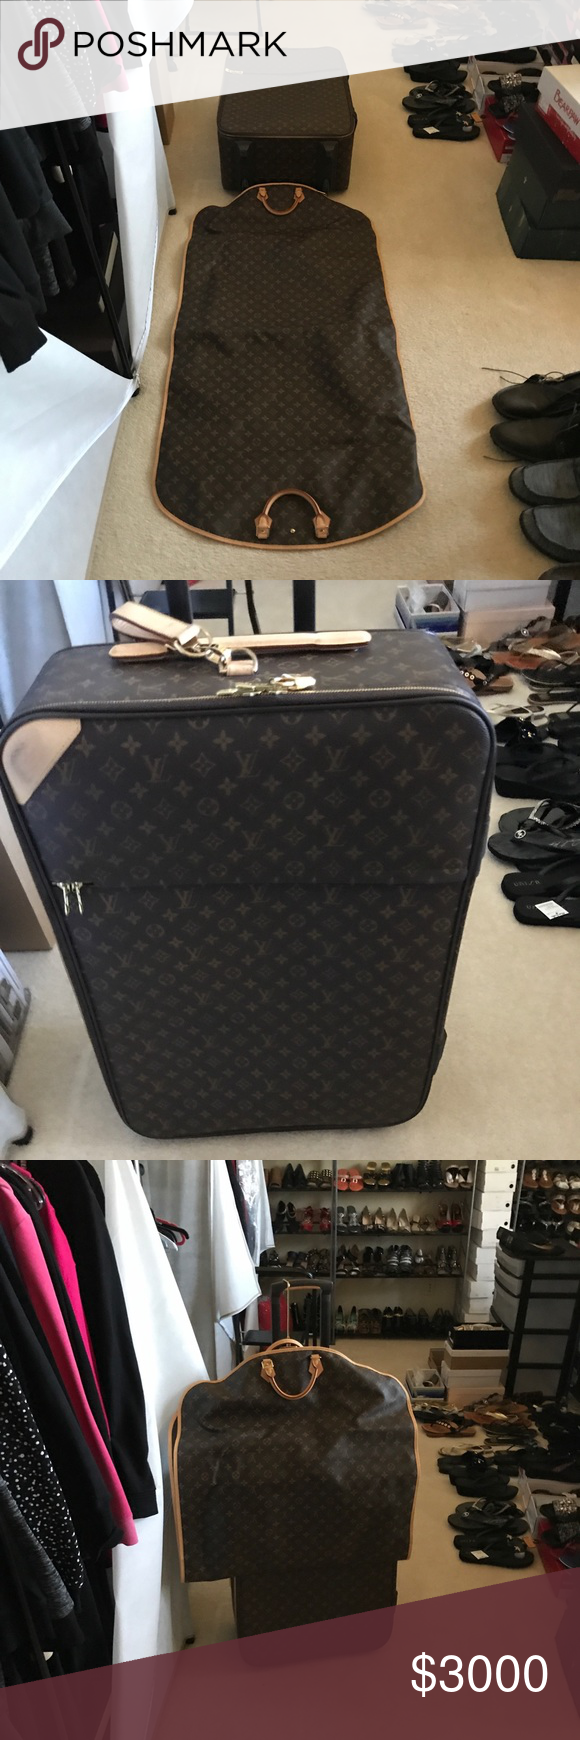 19ab7bd16364 Louis Vuitton luggage Garment bag and Suitcase. Louis Vuitton luggage This  is a two piece luggage set very well-maintained it taking care of.